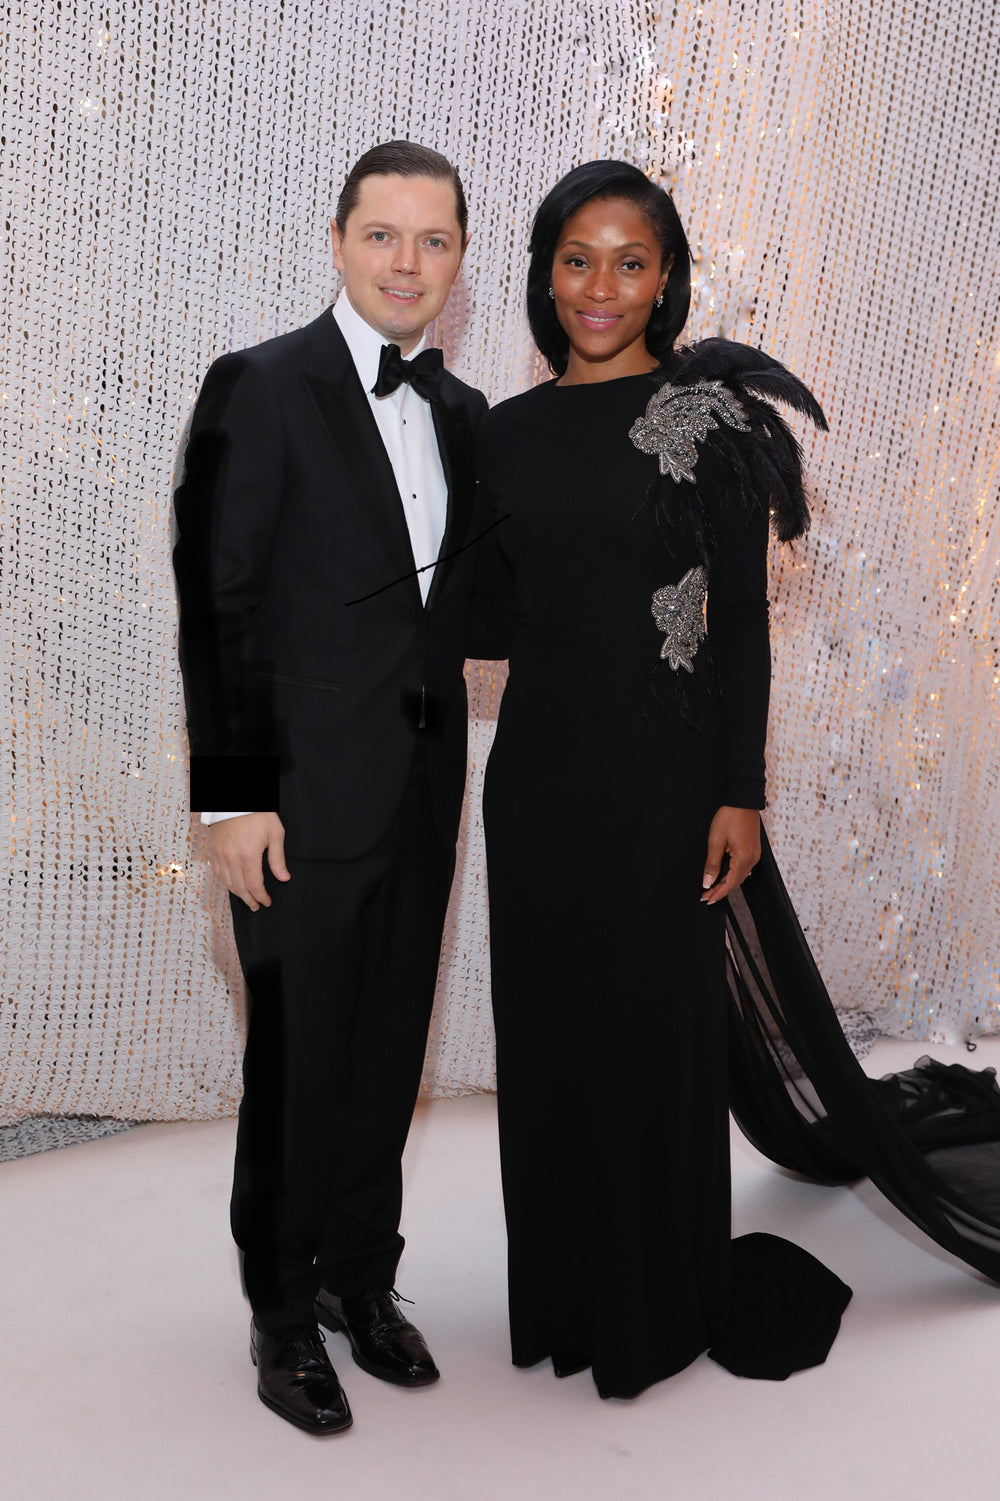 Houston Ballet Ball, Shamika Johnson, Van Cleef & Arpels, David Peck, Miles David